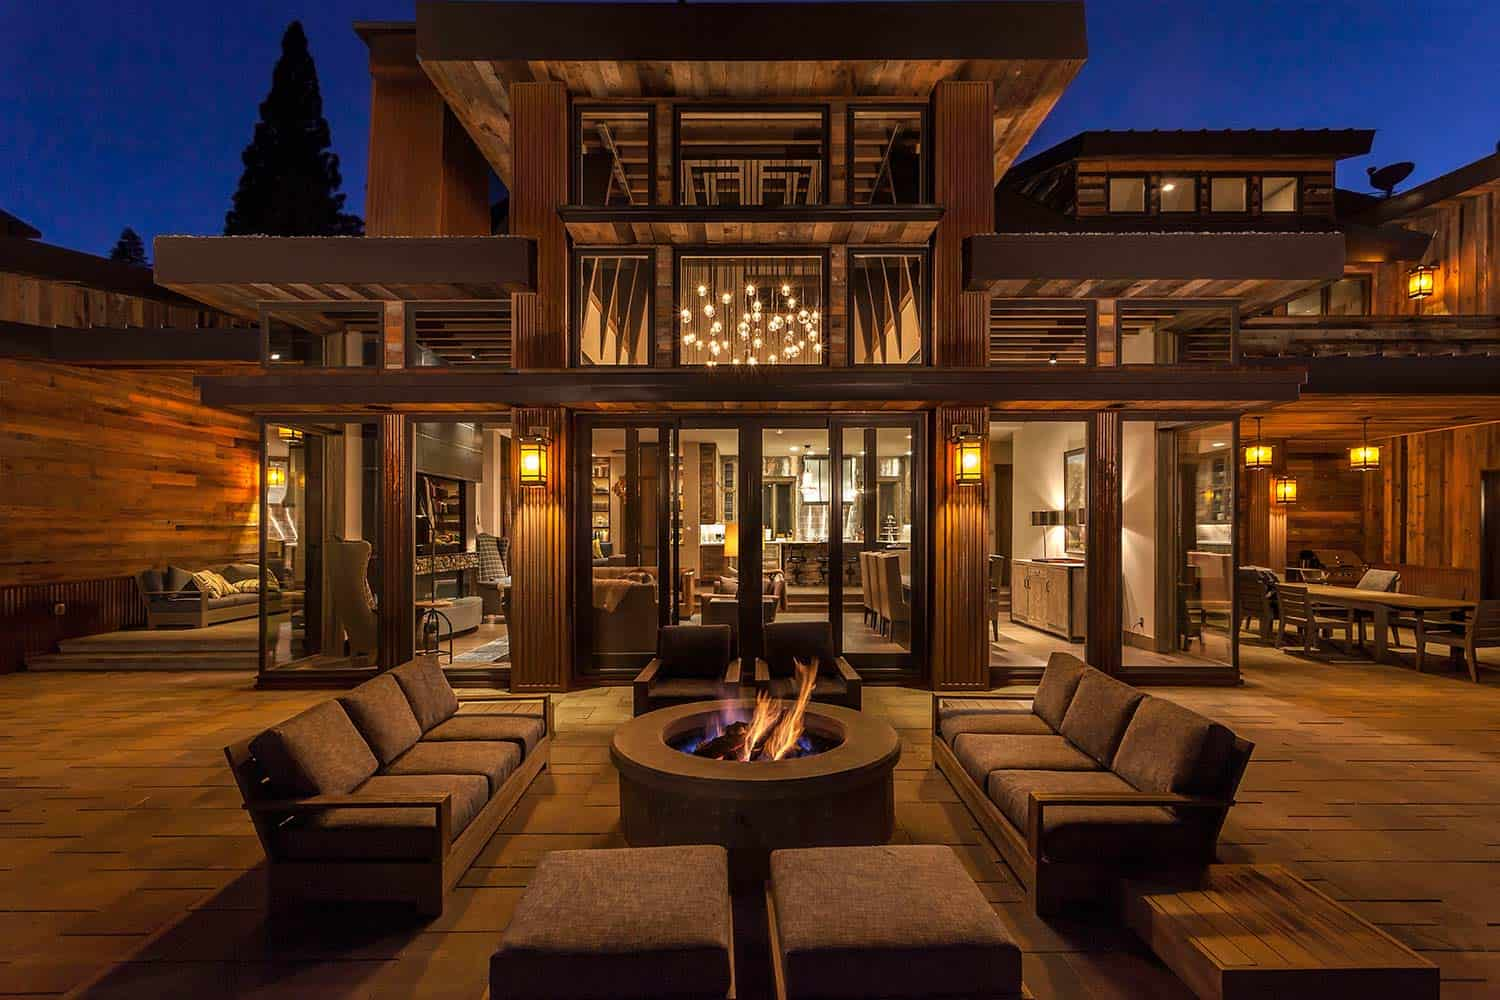 Lake Tahoe getaway features contemporary barn aesthetic on Interior:ybeqvfpgwcq= Modern House  id=89128